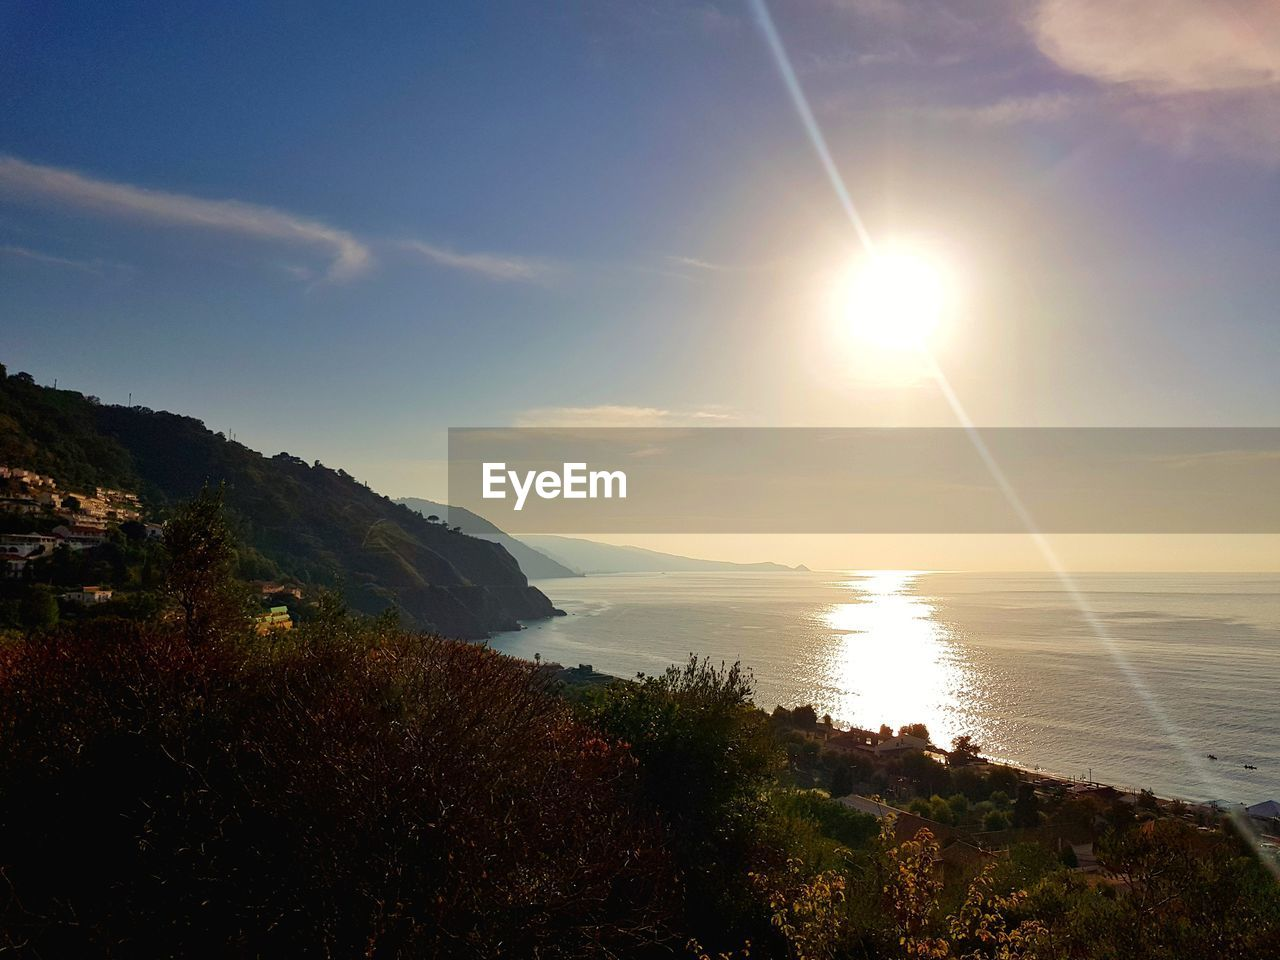 sky, water, beauty in nature, scenics - nature, sunlight, tranquility, sun, tranquil scene, sea, nature, sunbeam, mountain, lens flare, plant, no people, cloud - sky, idyllic, land, beach, bright, outdoors